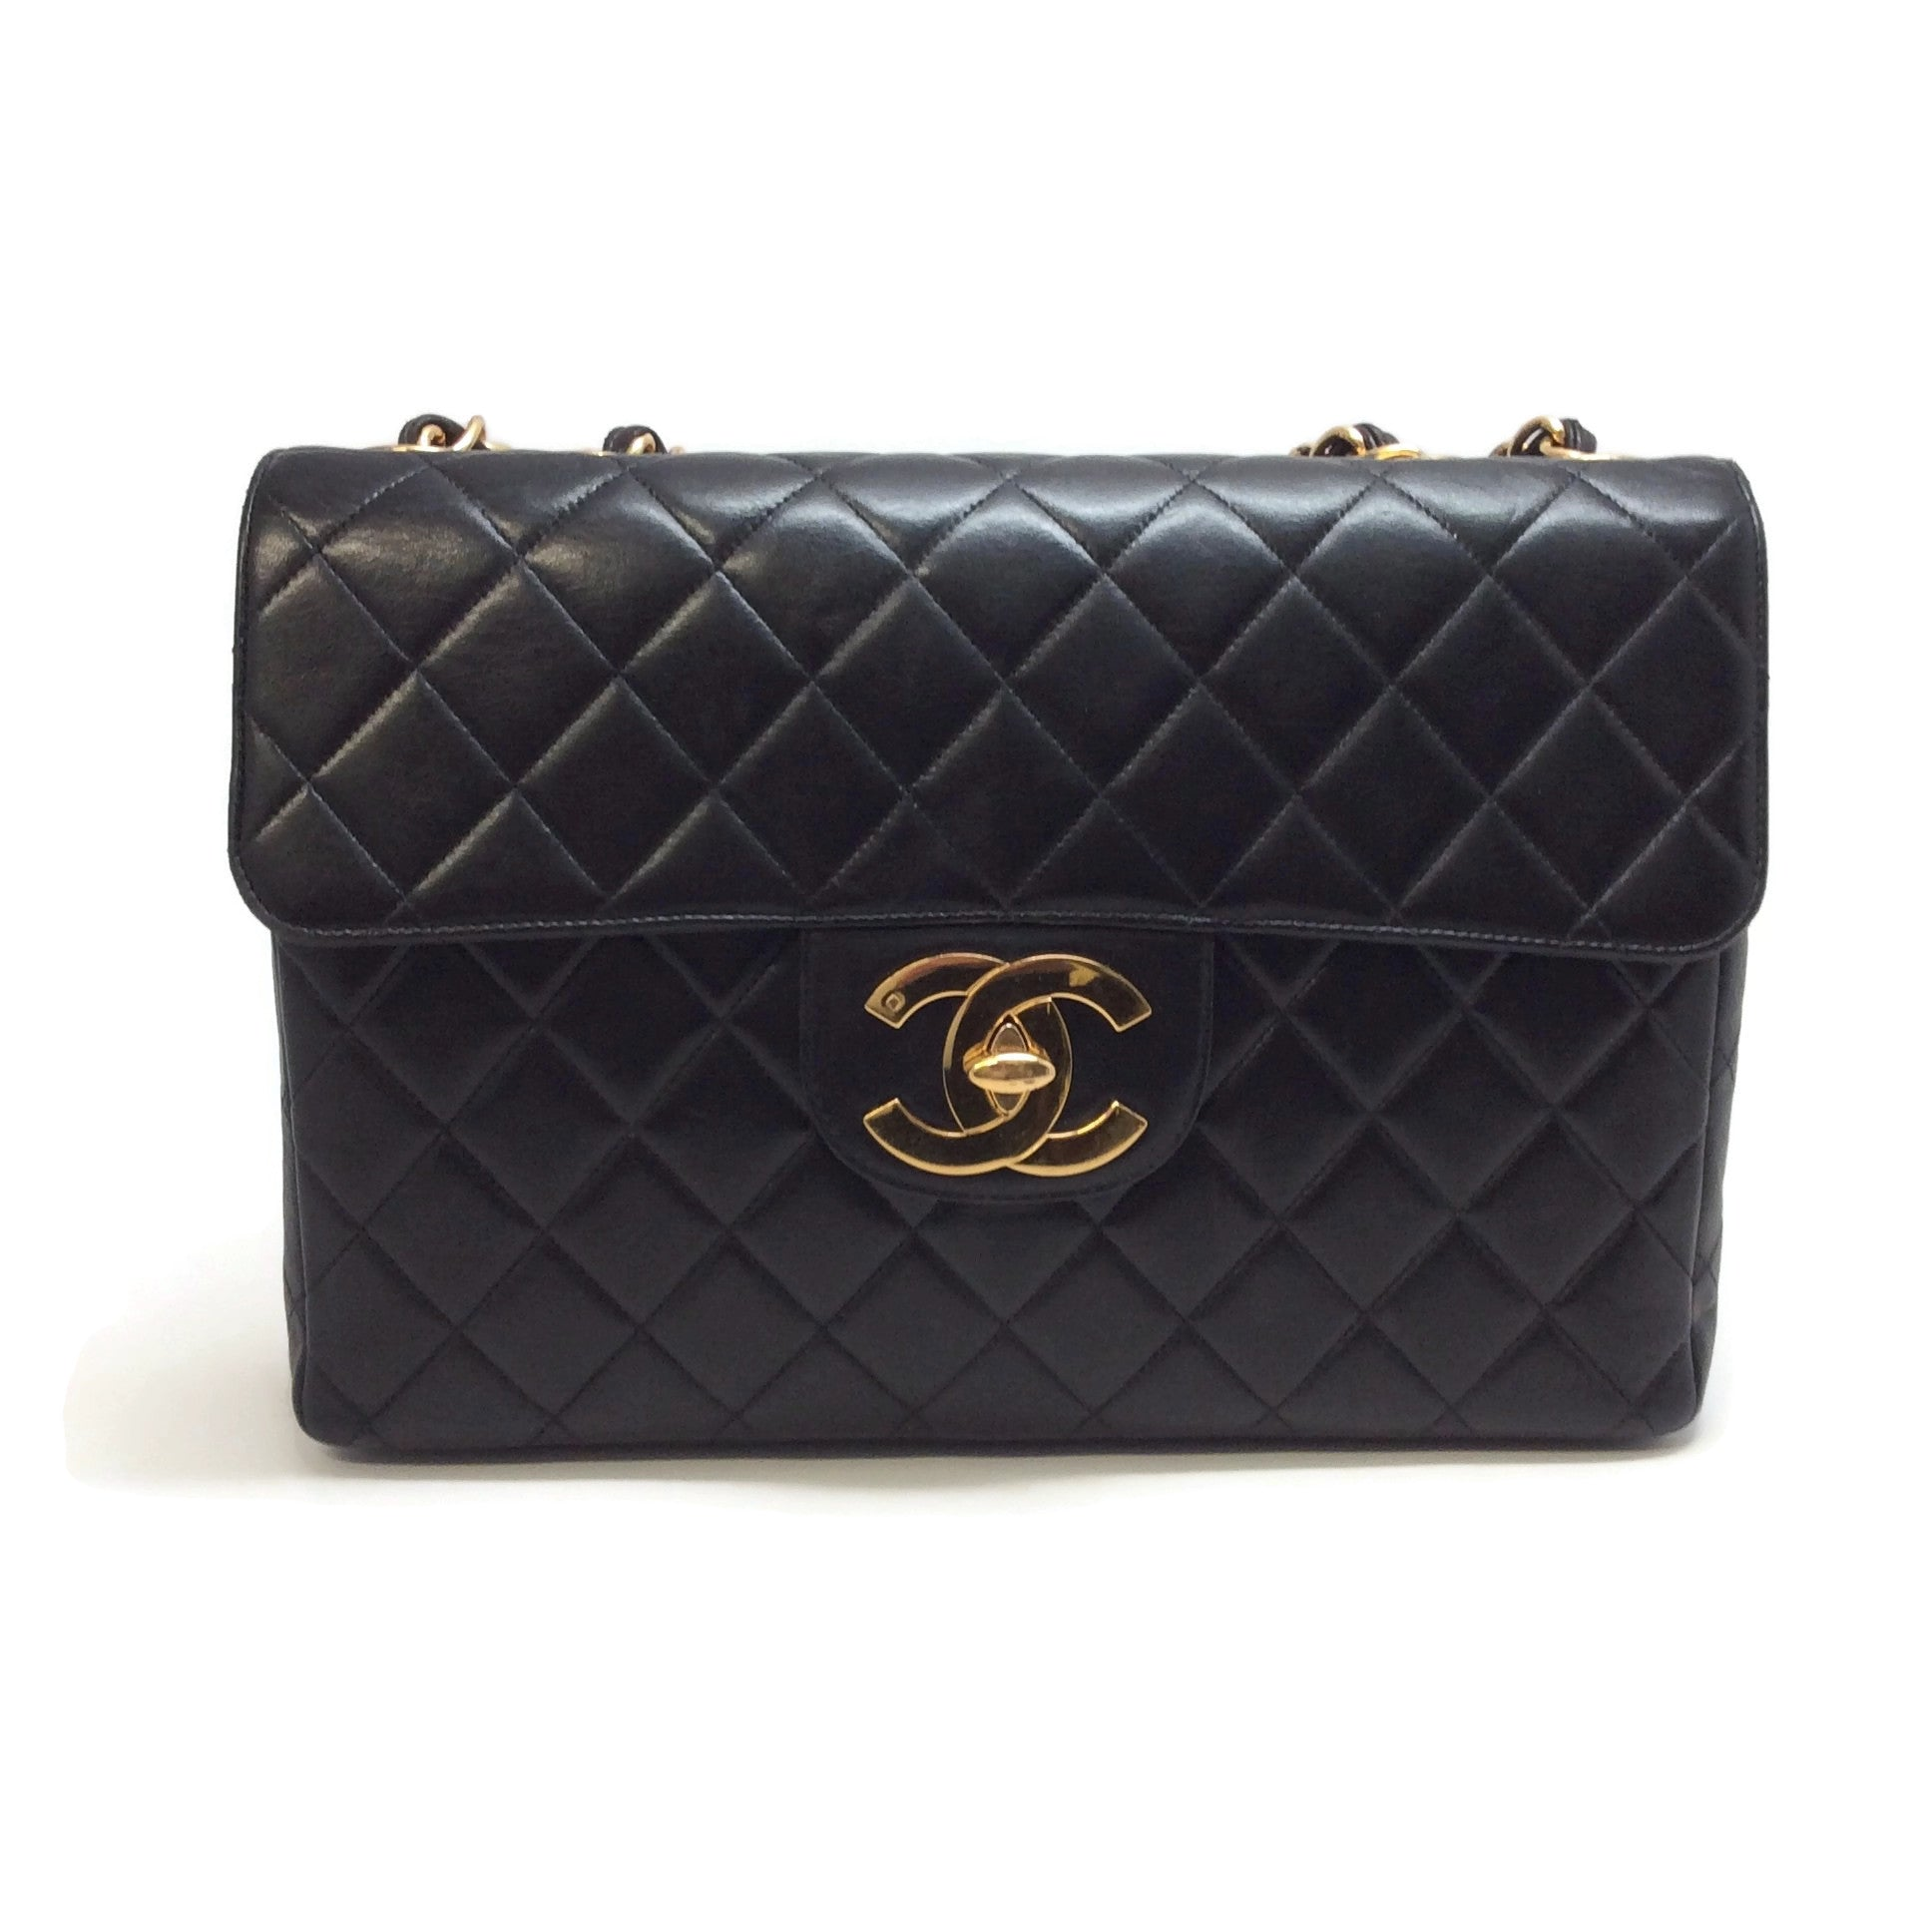 Chanel 1994 - 1996 2.55 Reissue Jumbo Black Calfskin Leather Shoulder Bag